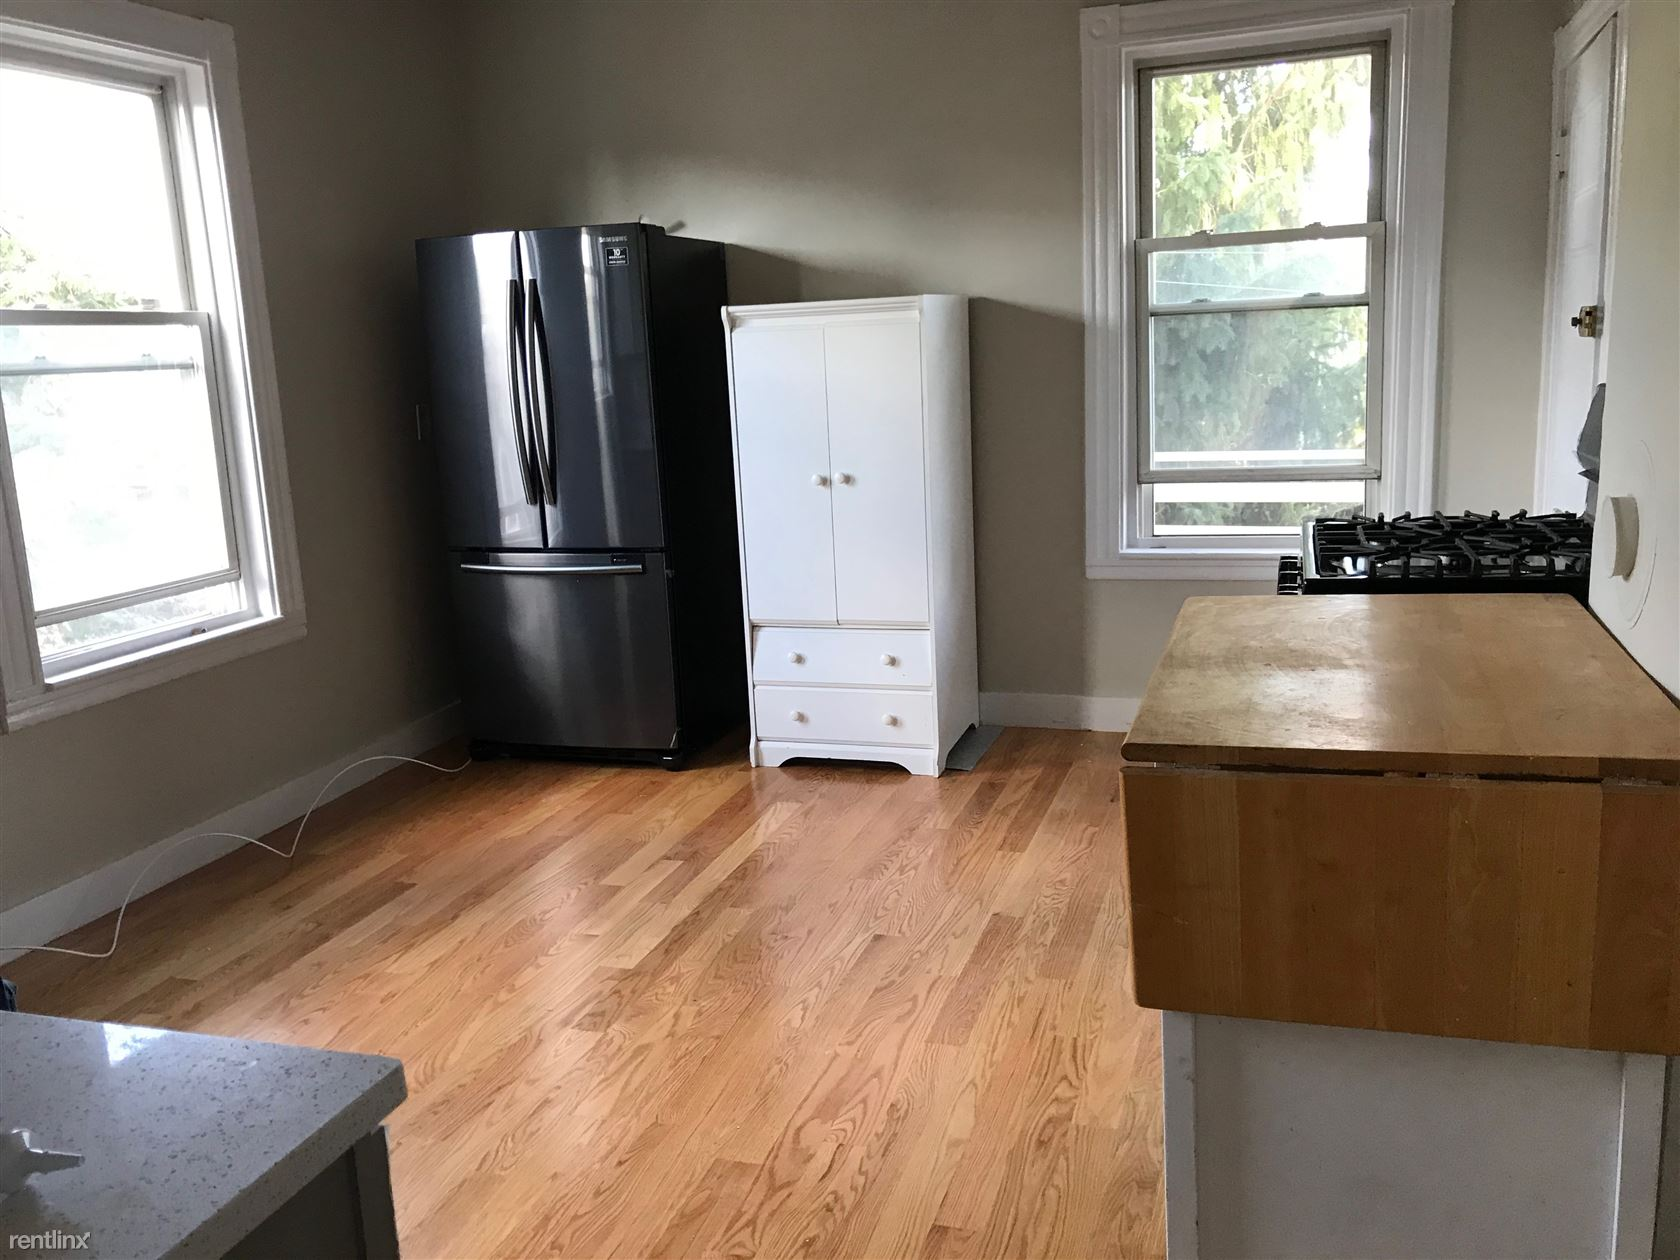 17 Breed St Apt 3